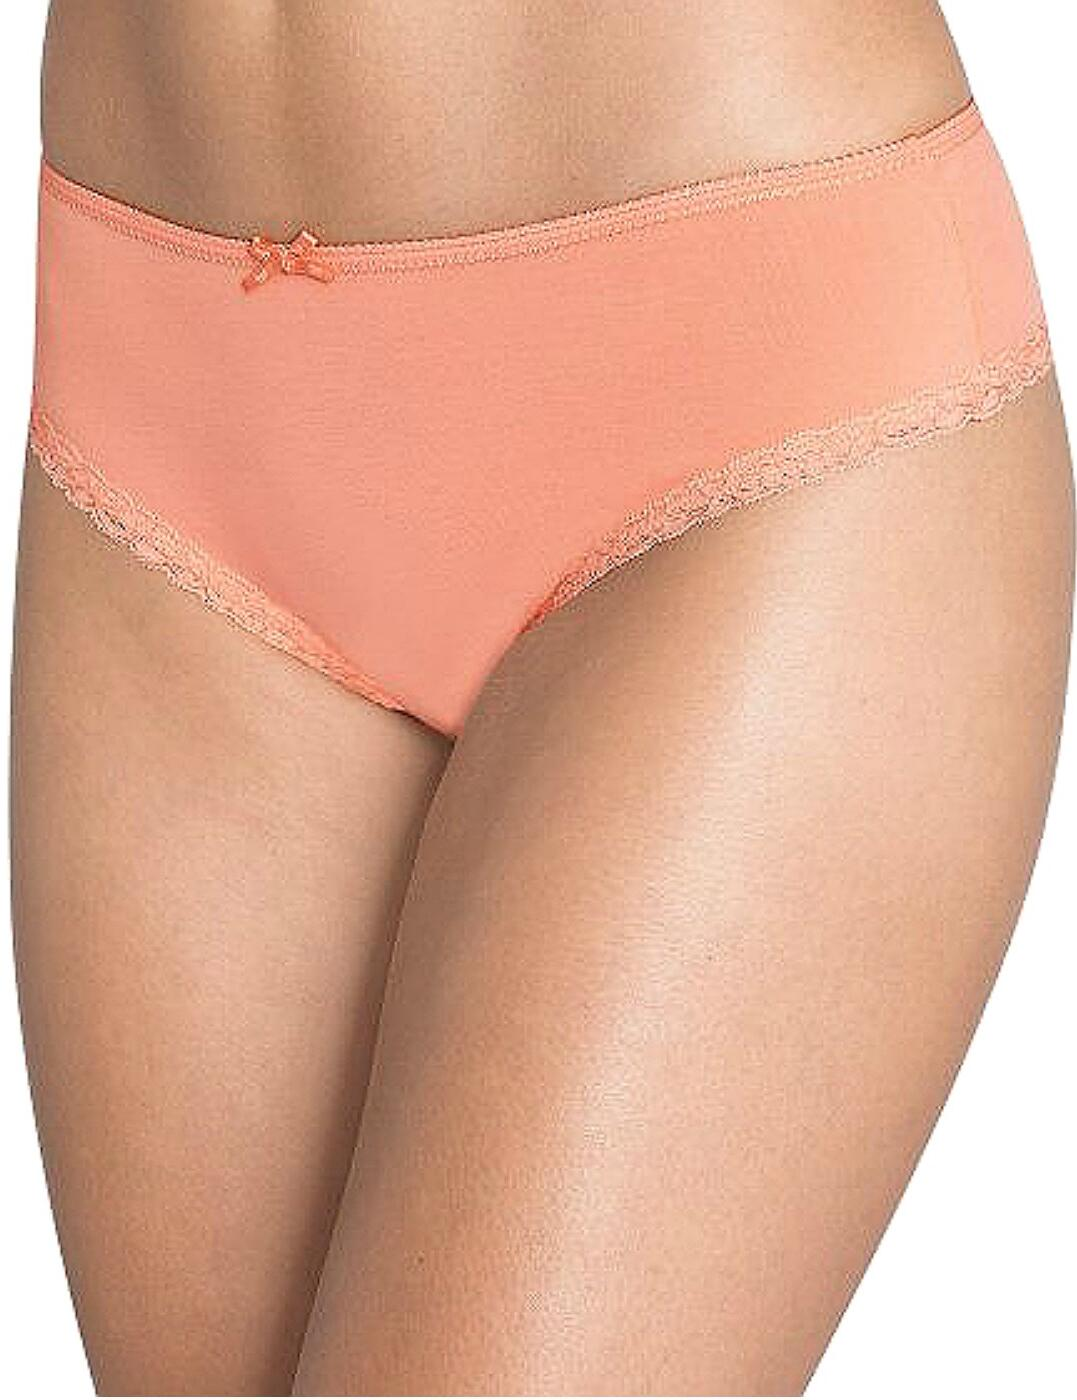 10144021 Sloggi Dolce N Hipster 2 Pack - 10144021 Orange/Light Combination